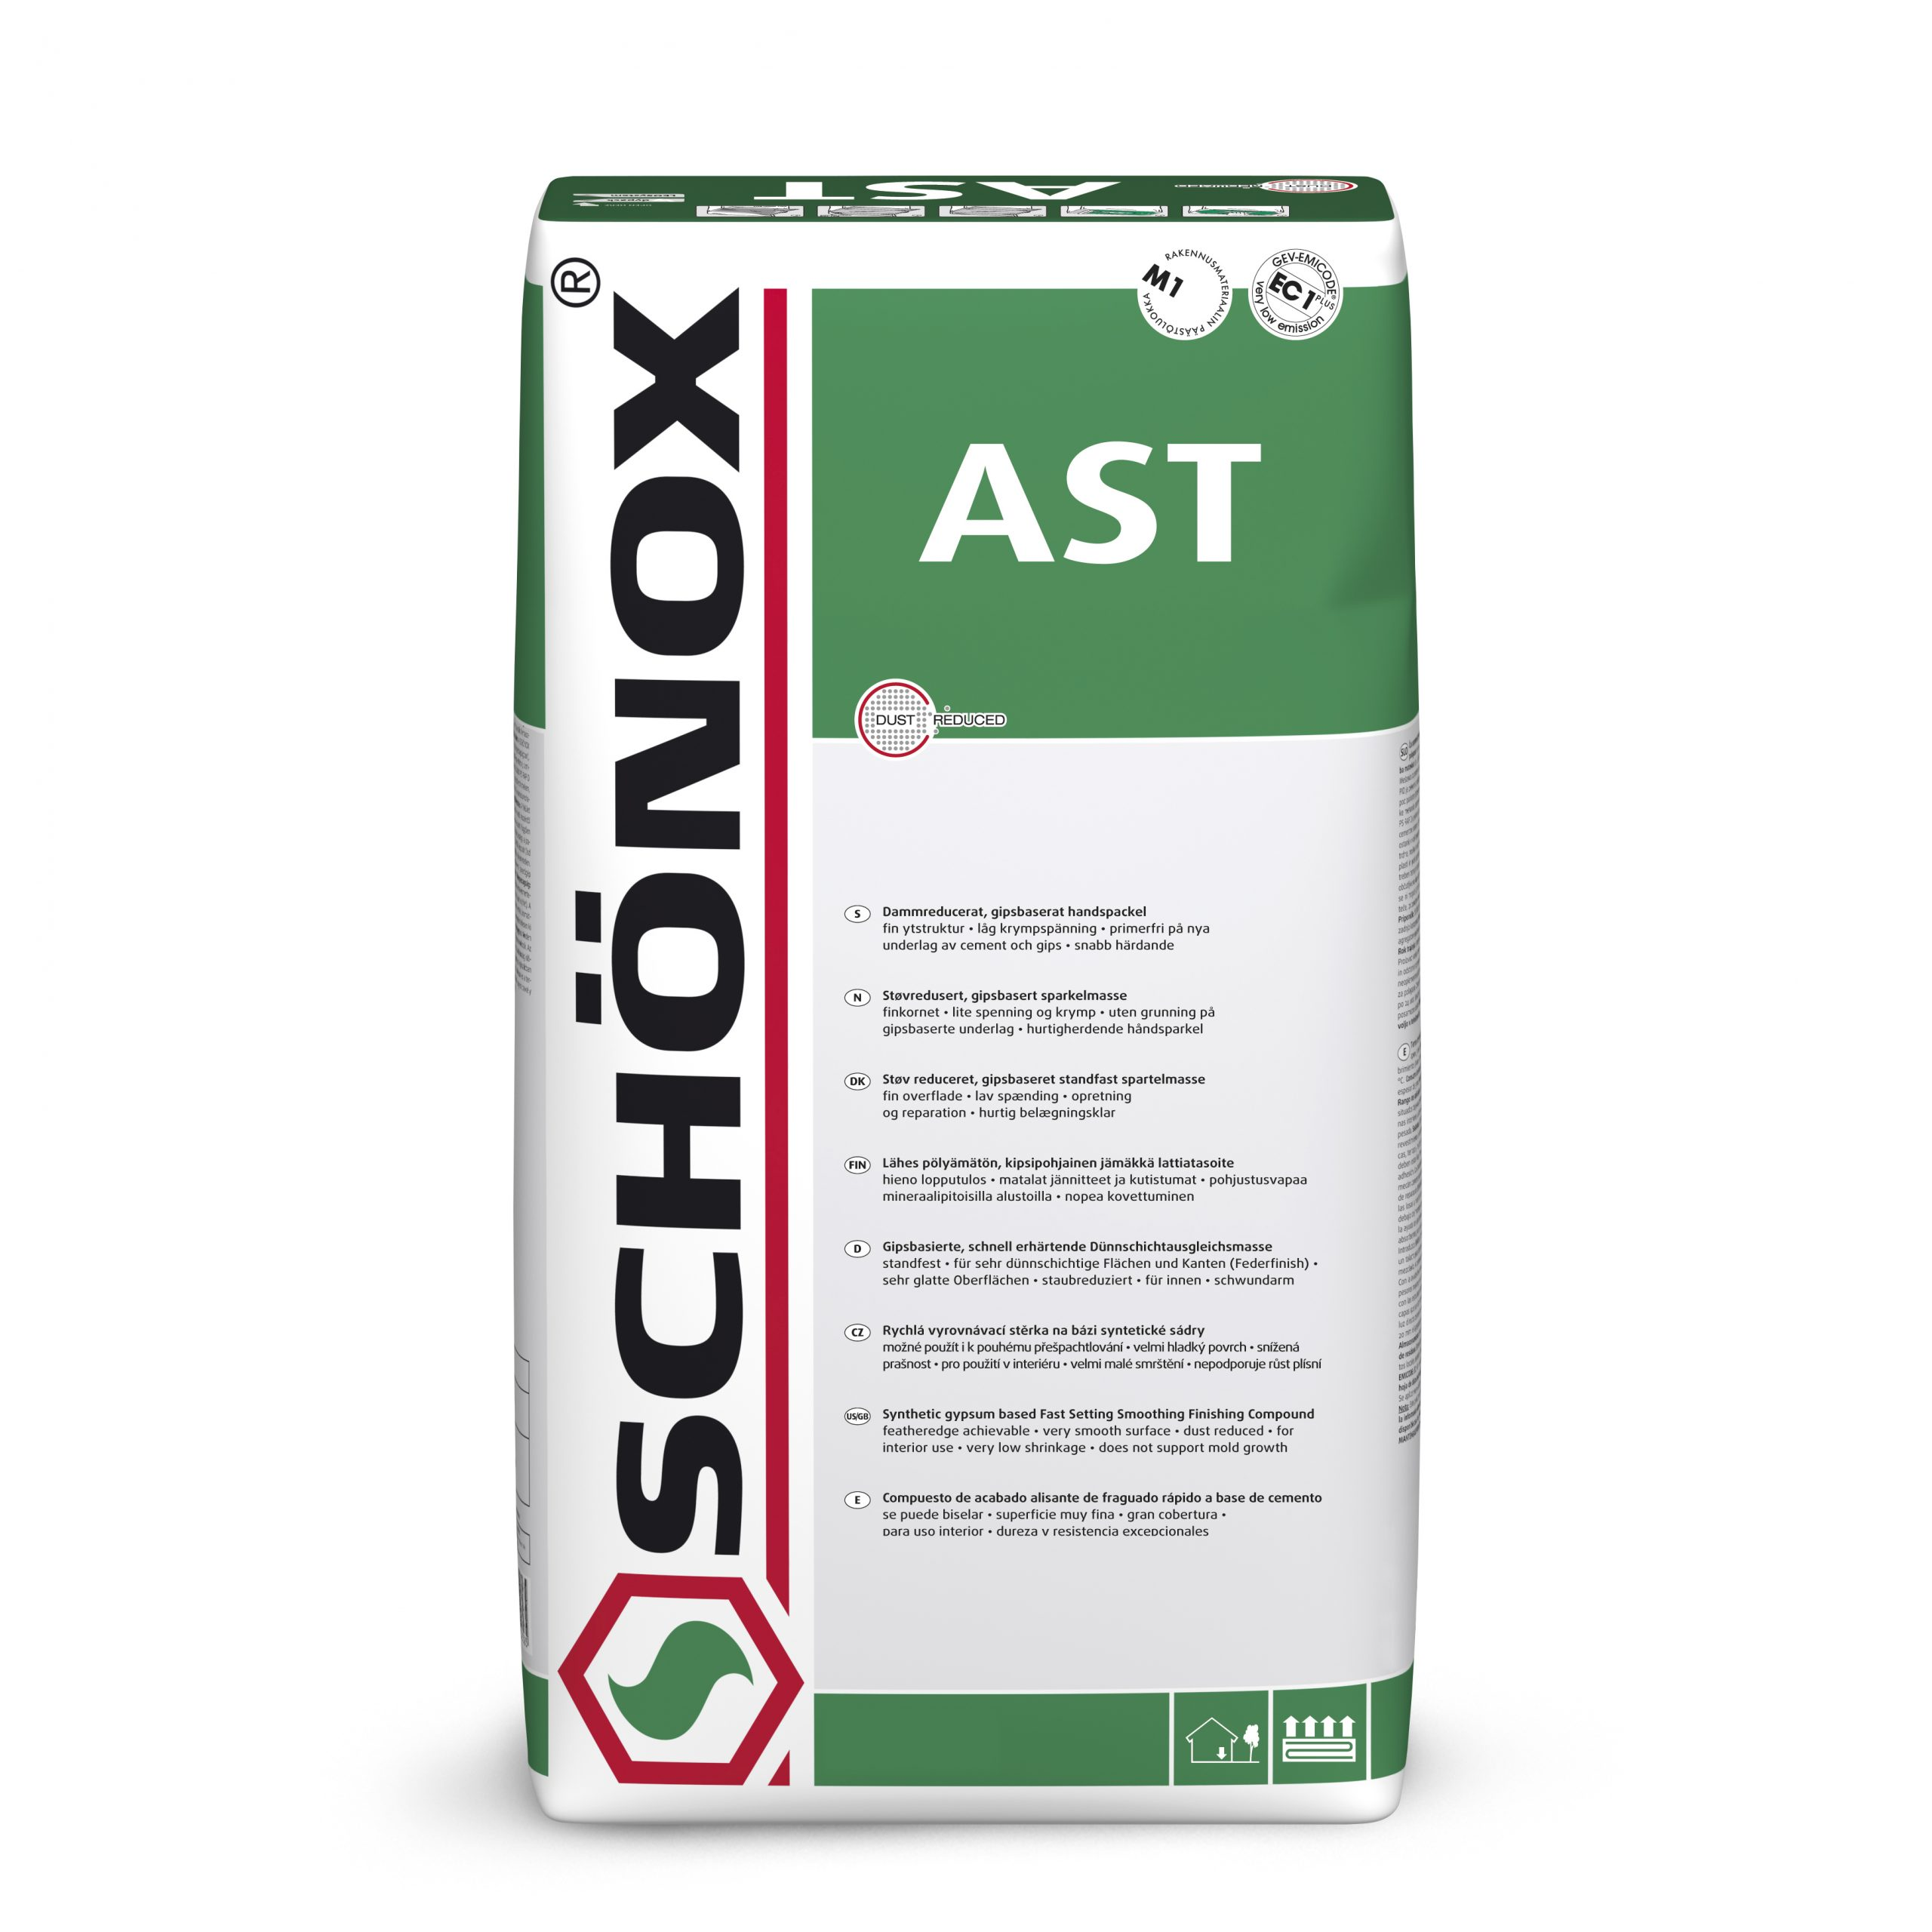 Image of AST Product Bag